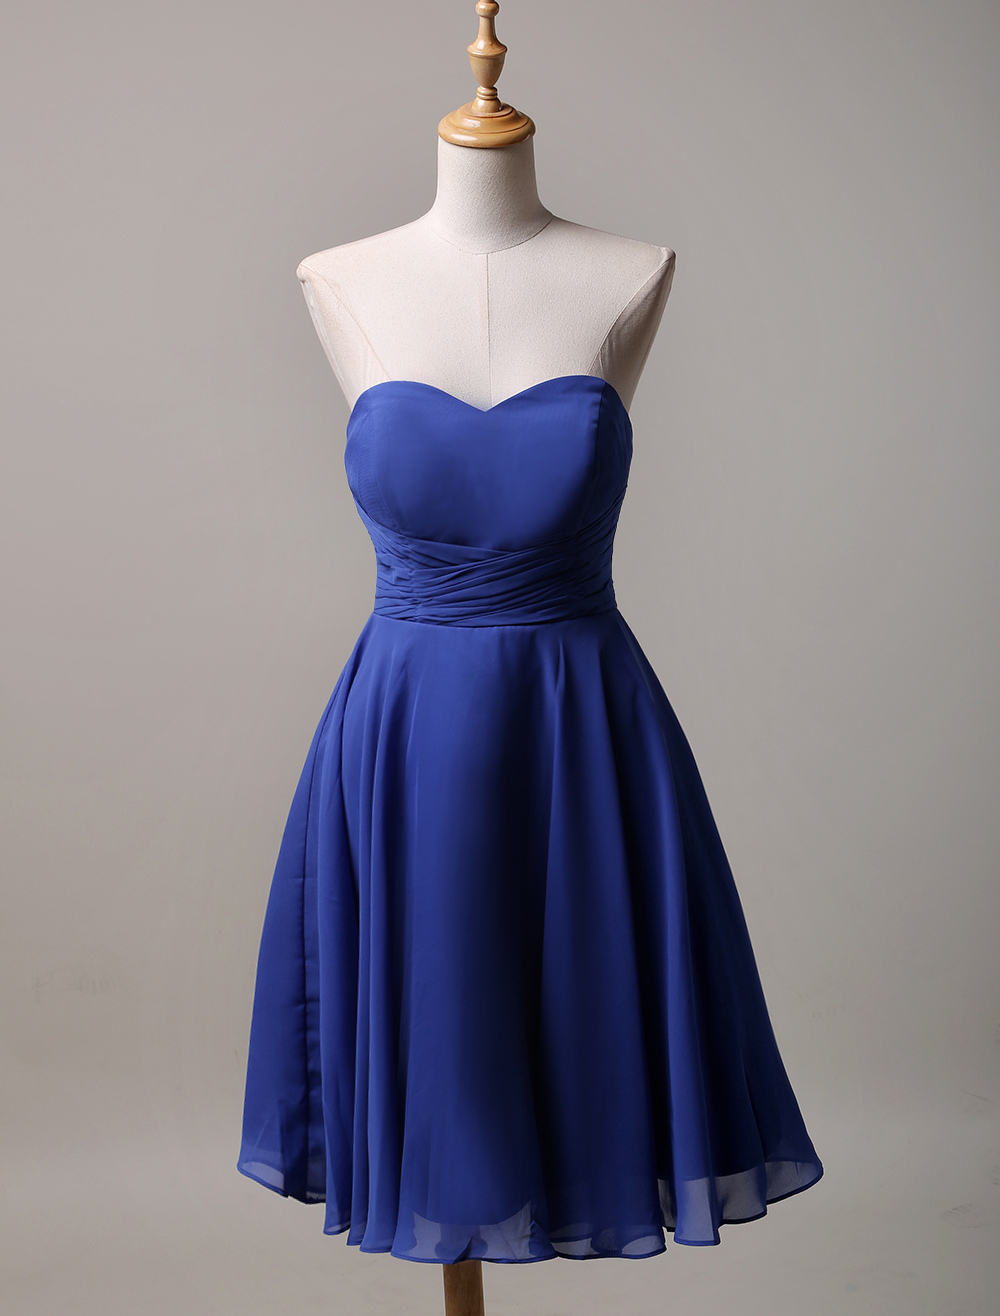 A-Line Strapless Sweatheart Chiffon  Short Bridesmaid Dress